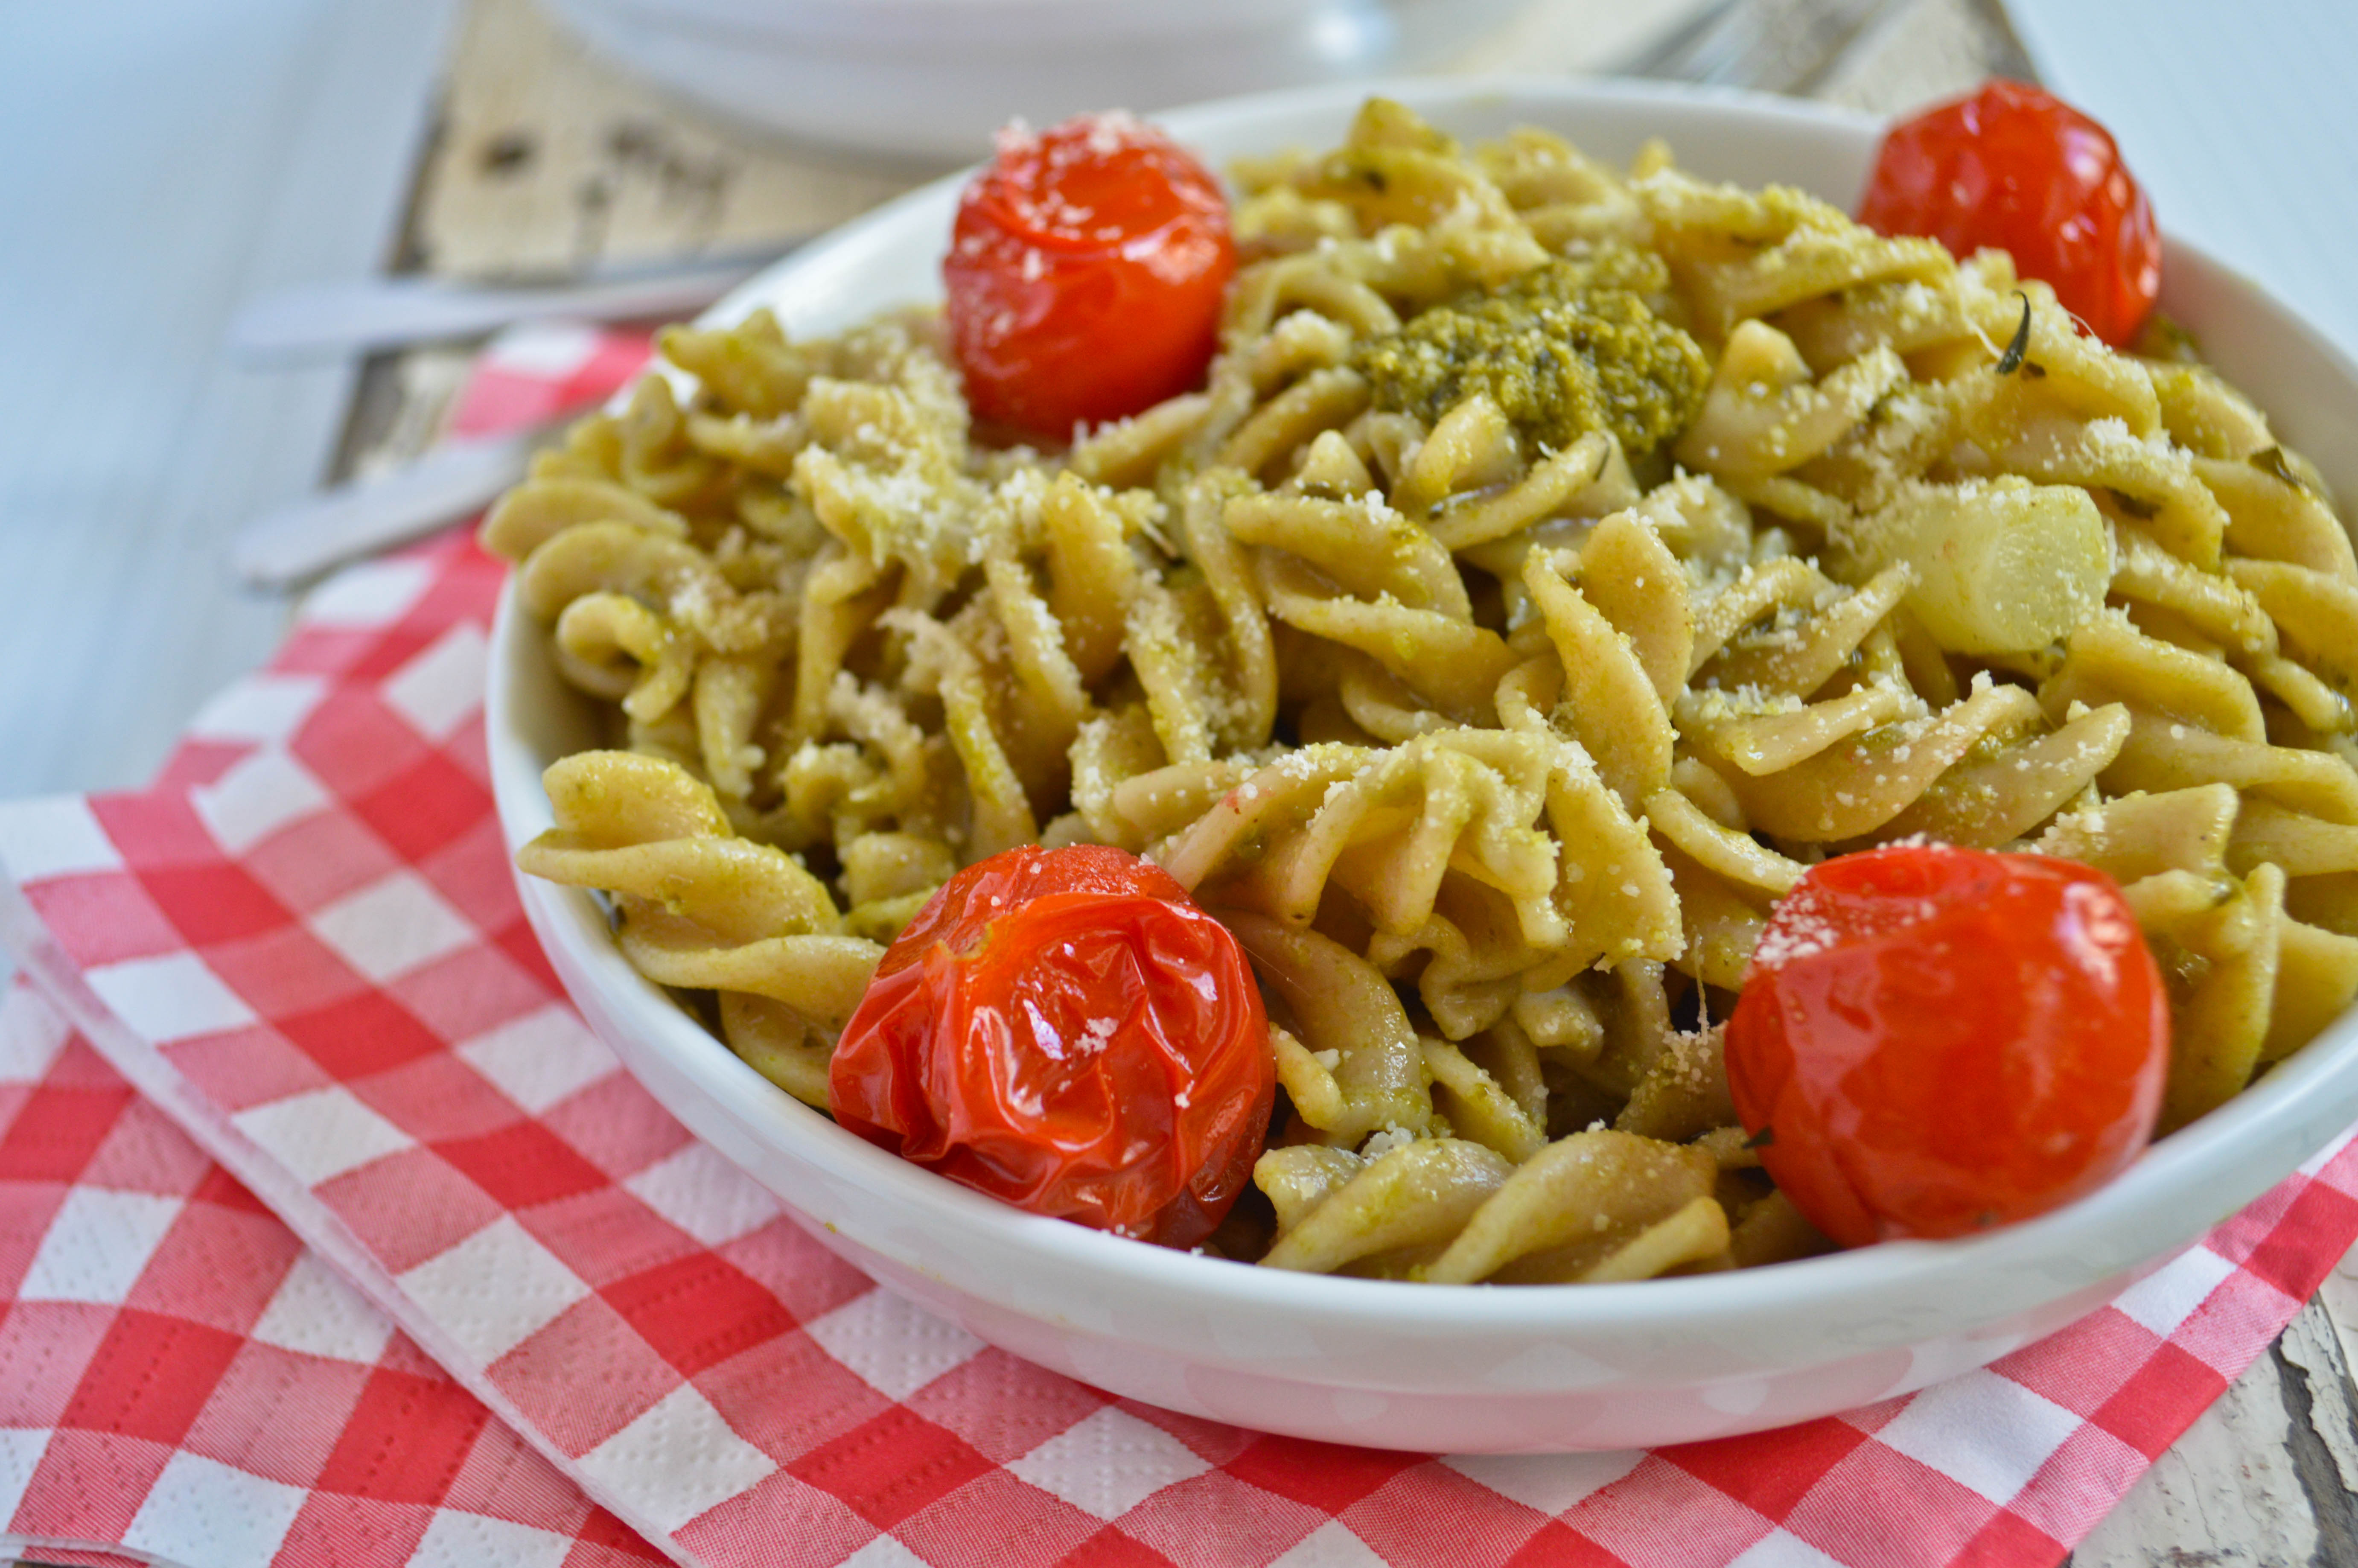 Pesto Pasta Salad with White Asparagus and Roasted Tomatoes